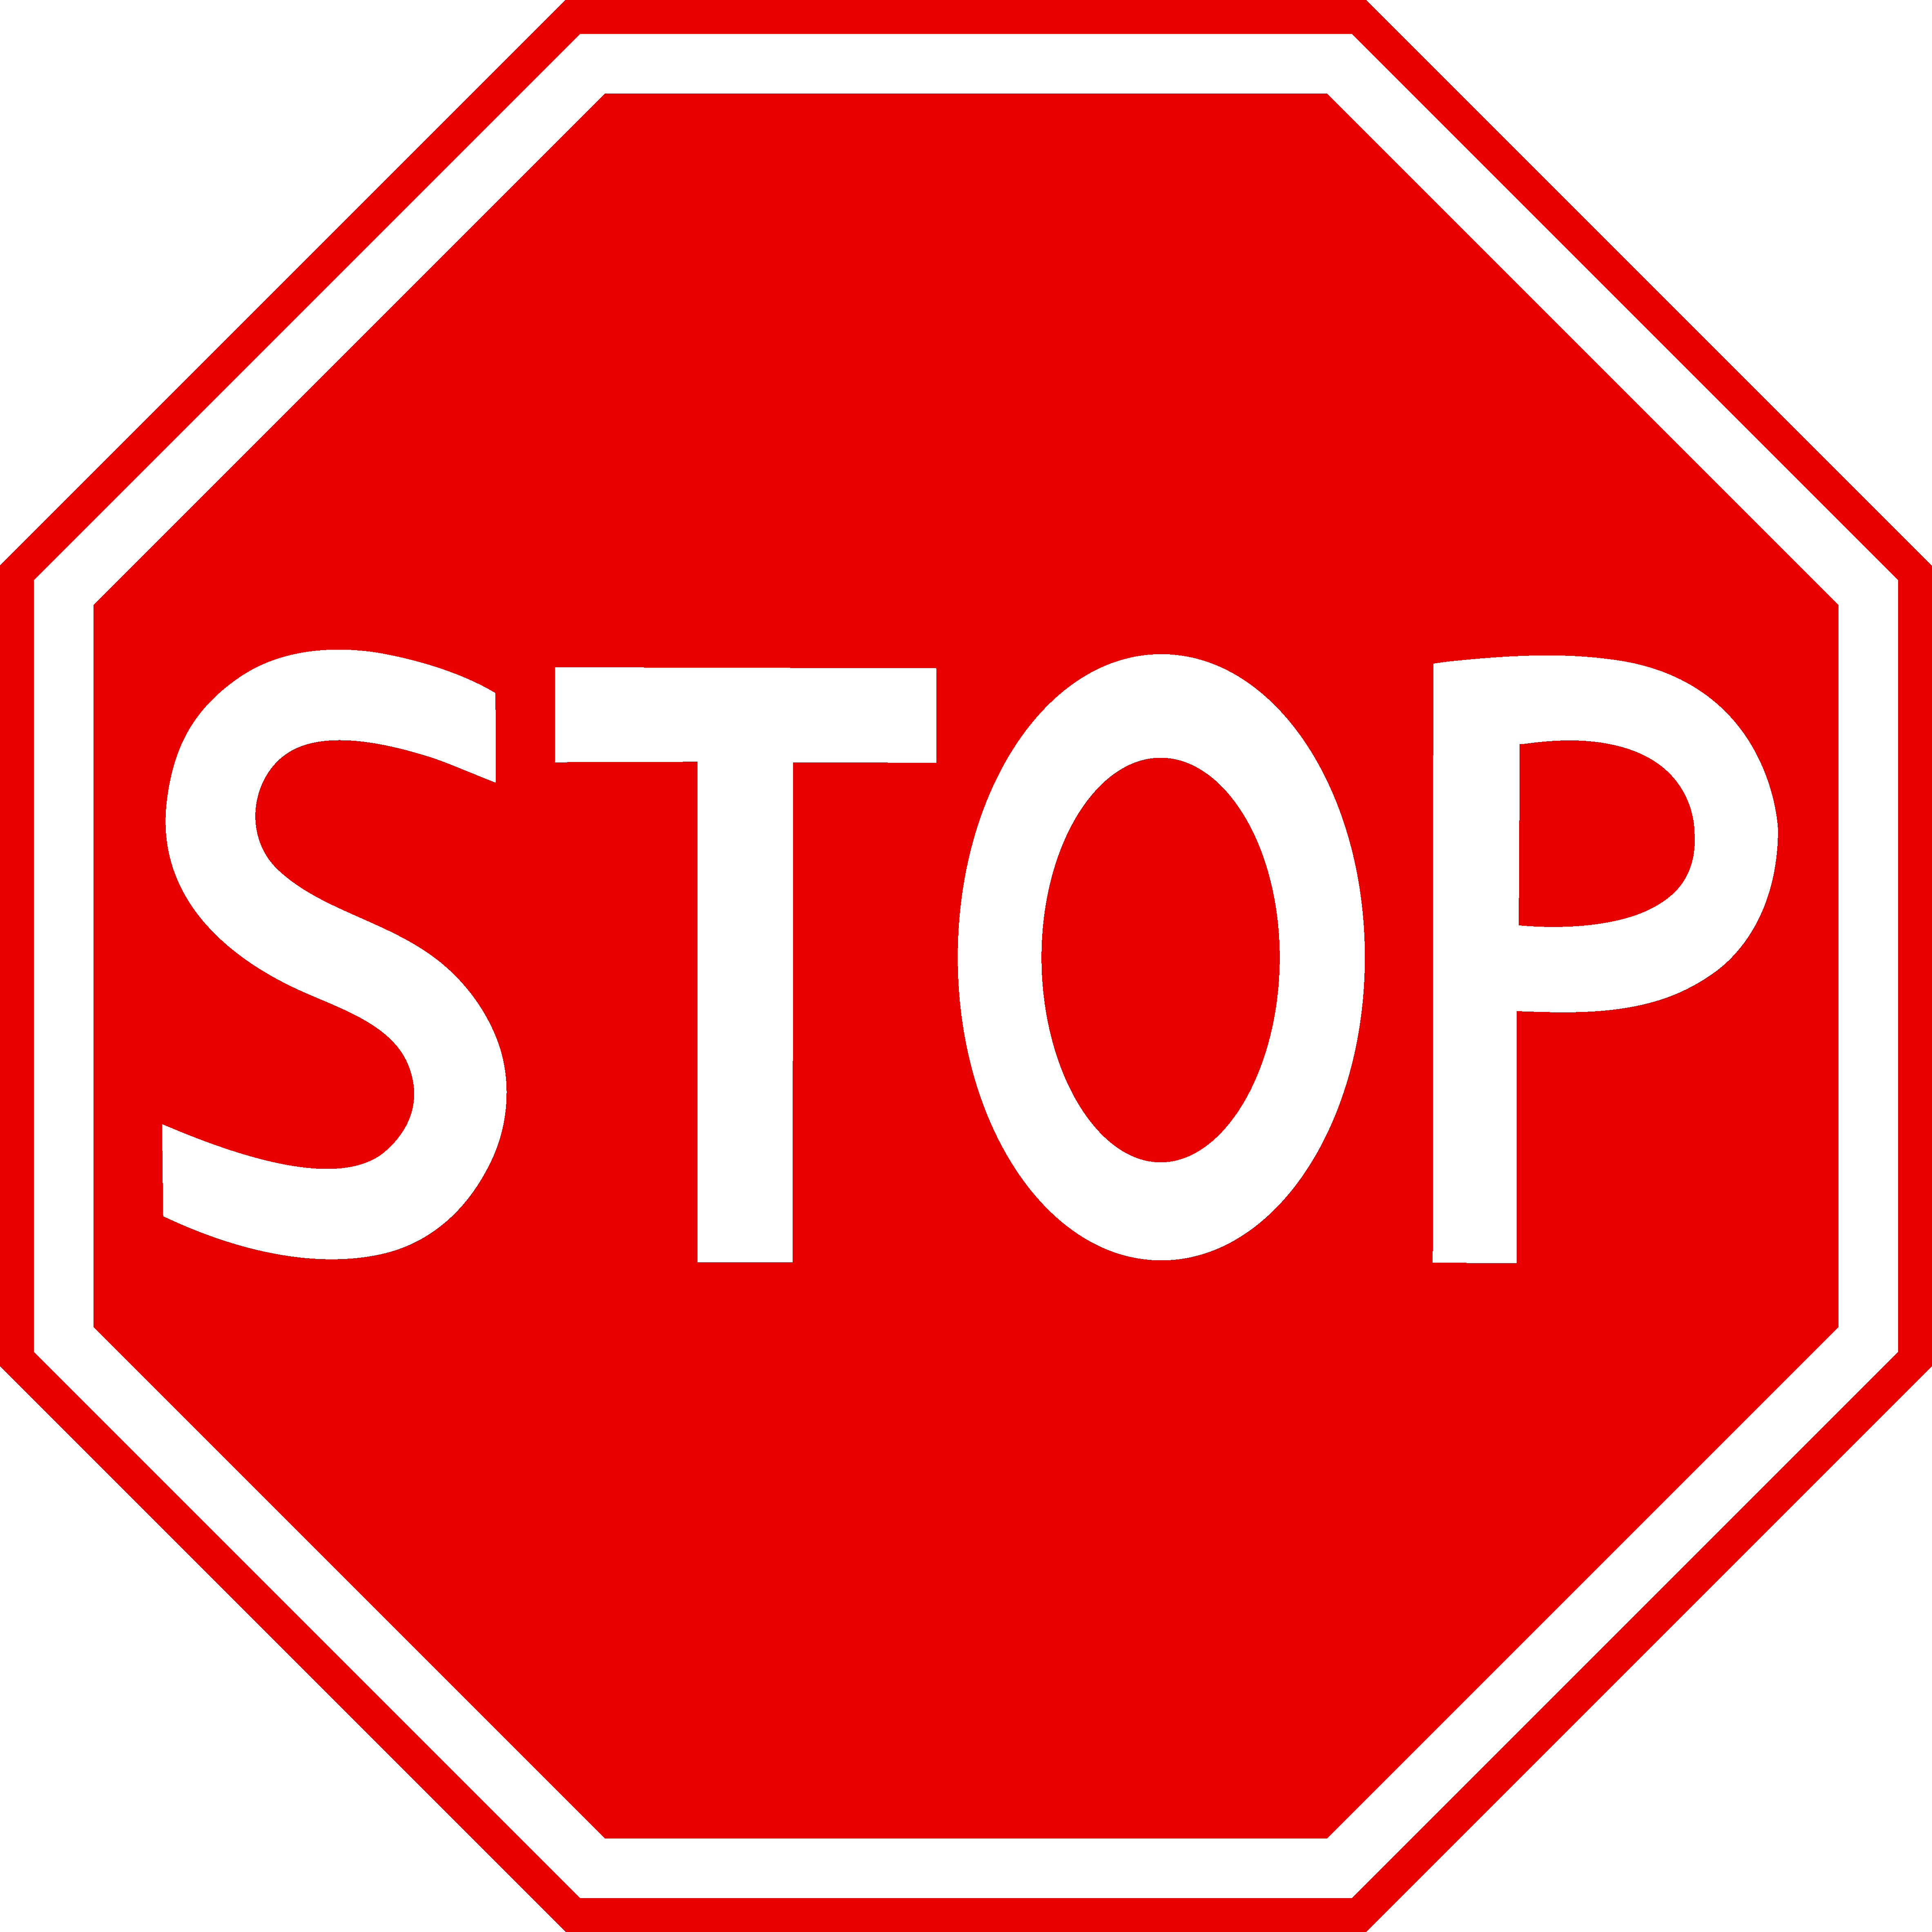 Red Stop Sign Clipart.